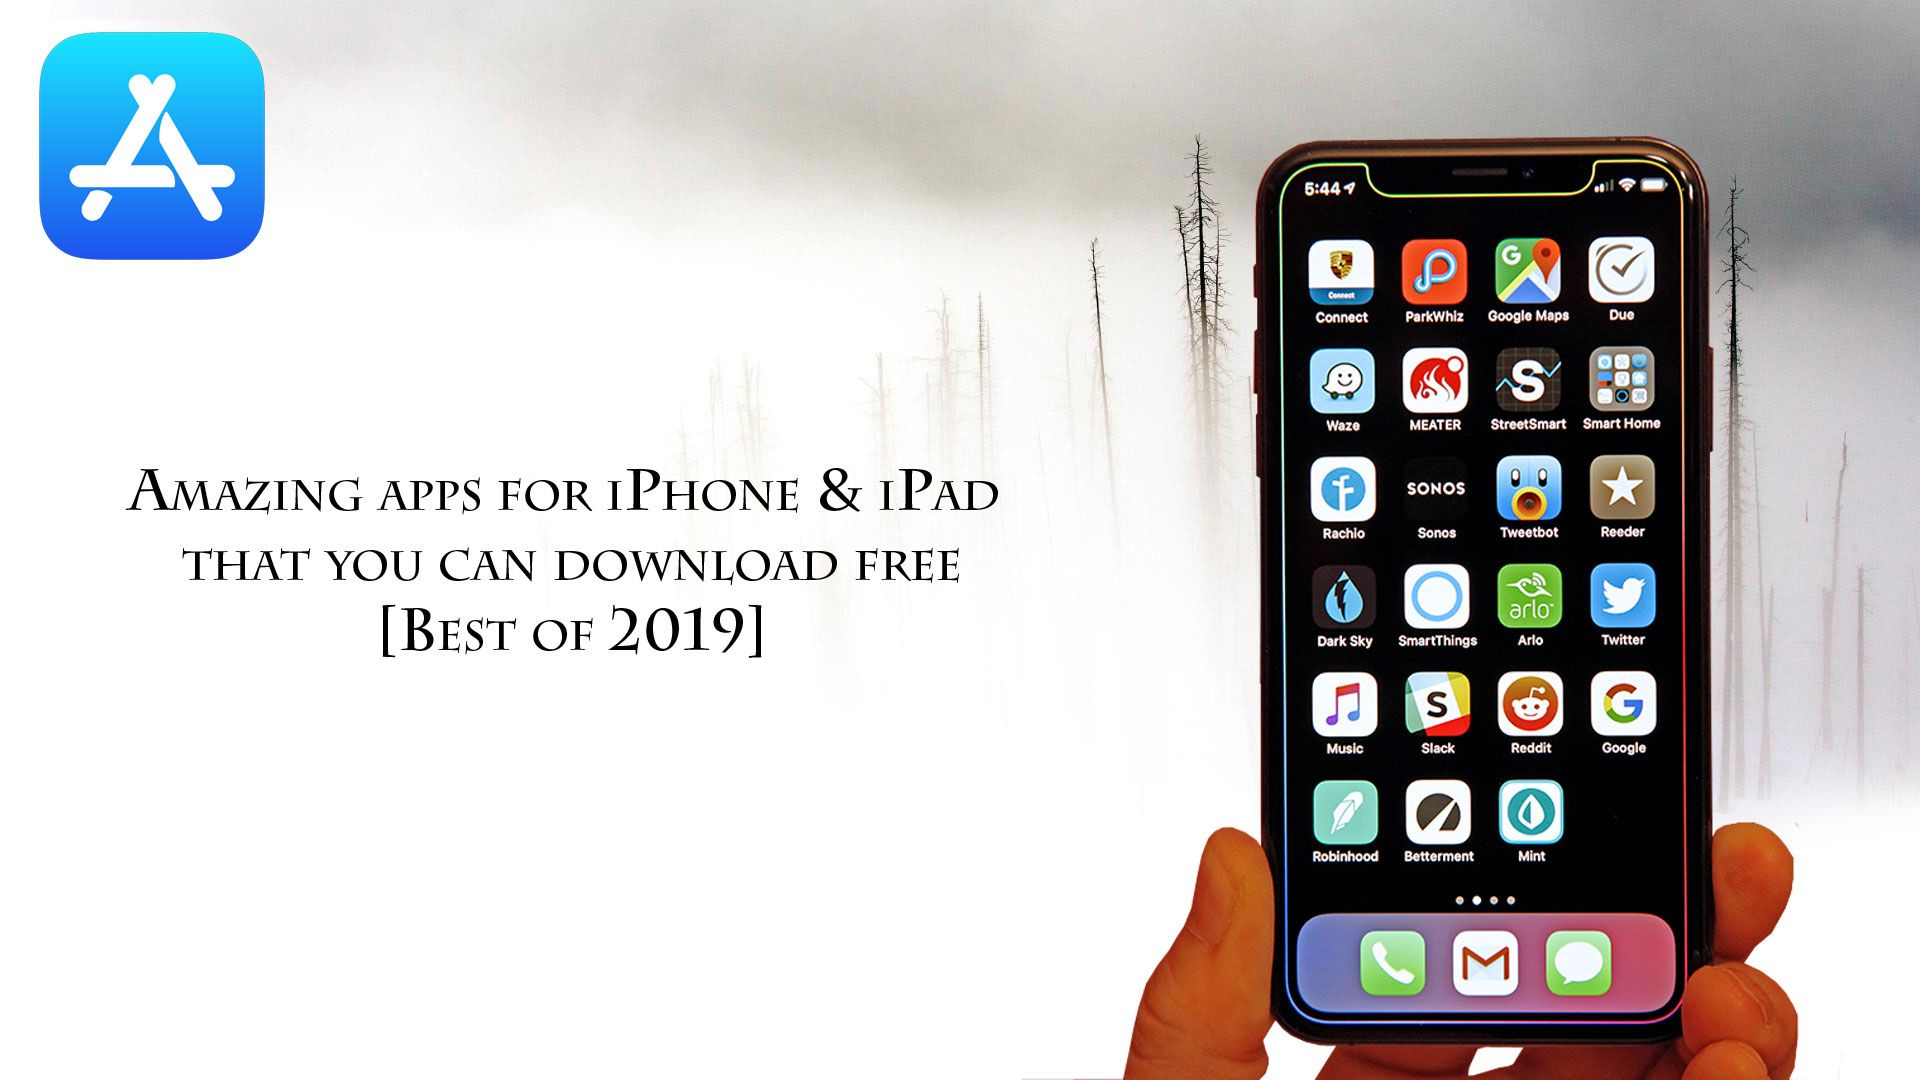 New iPhone apps 2019 10 musthave apps for iPhone iOS